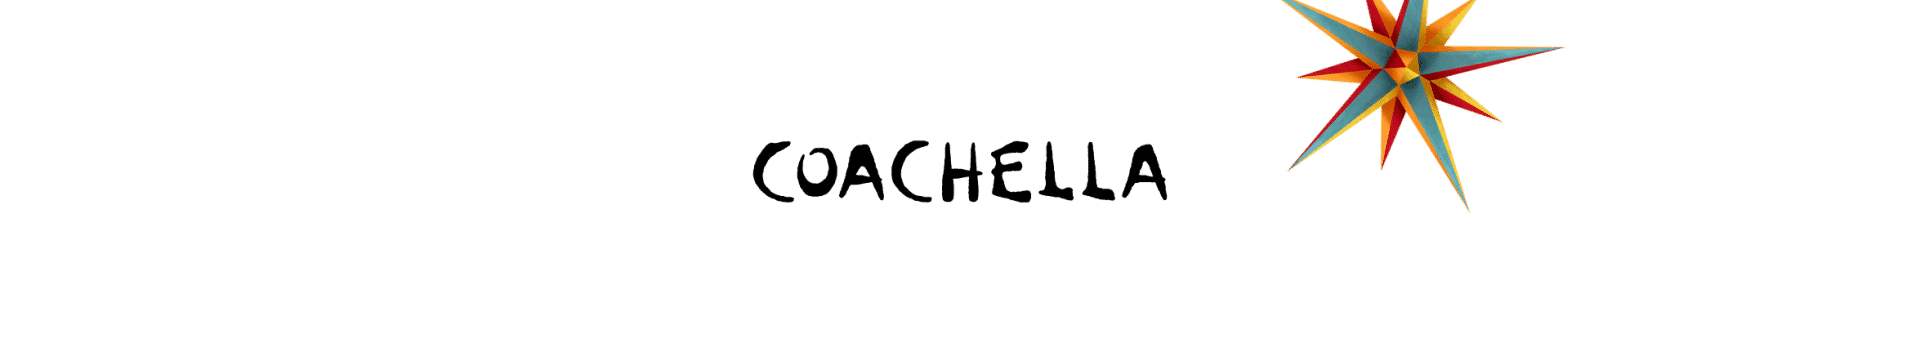 Coachella 2020 Travel Packages: Weekend 1